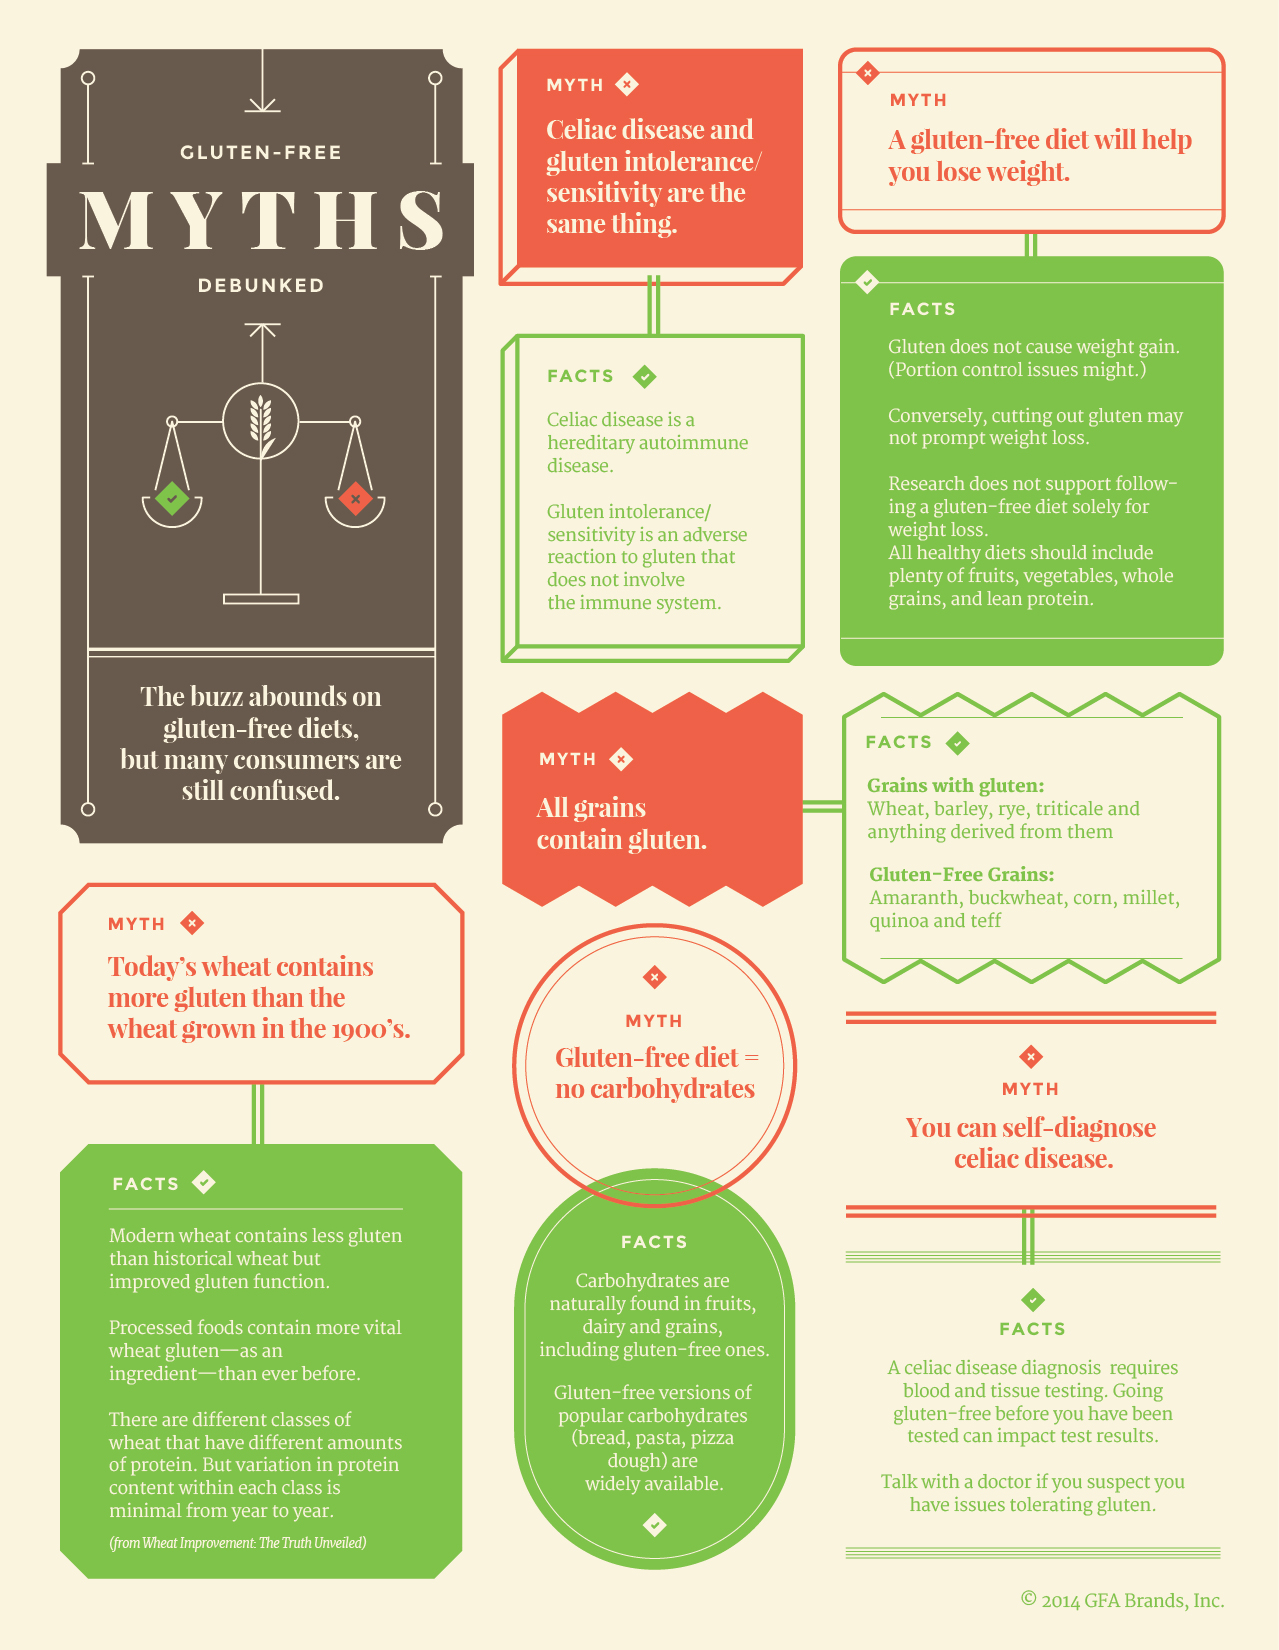 Gf_factsheet-myths_2.6-01